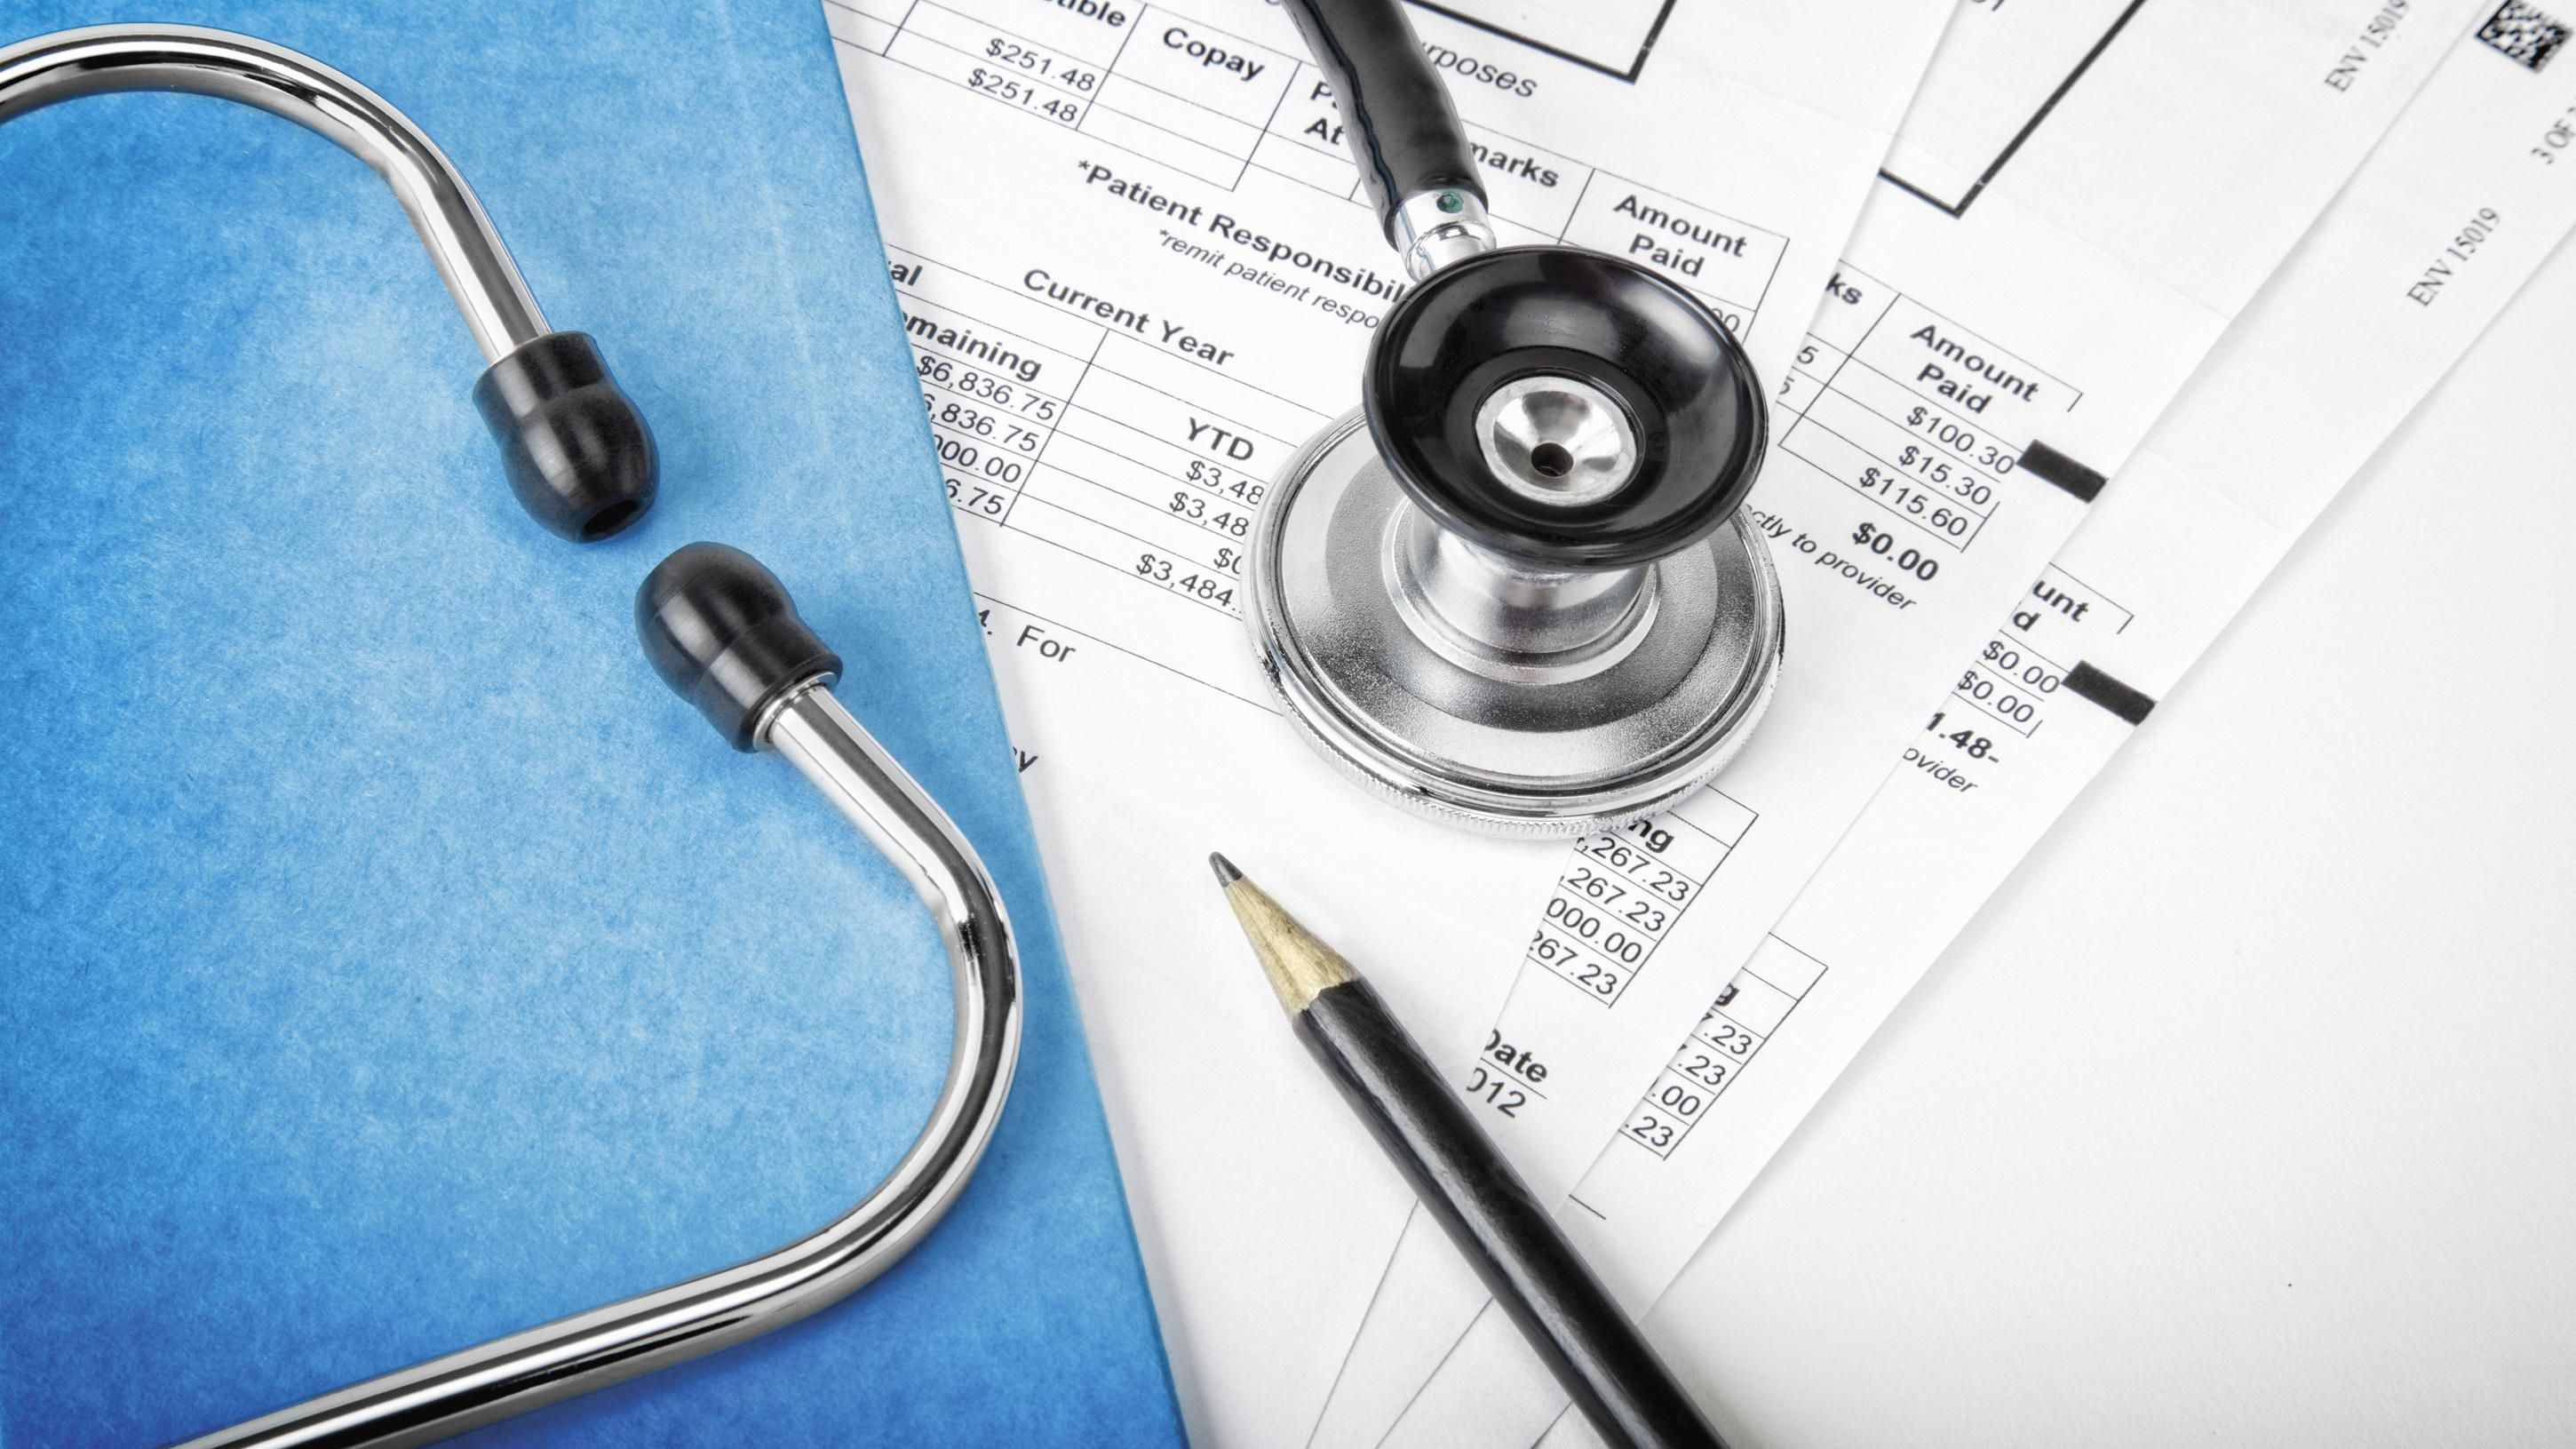 Medical Billing Guide for Home Businesses